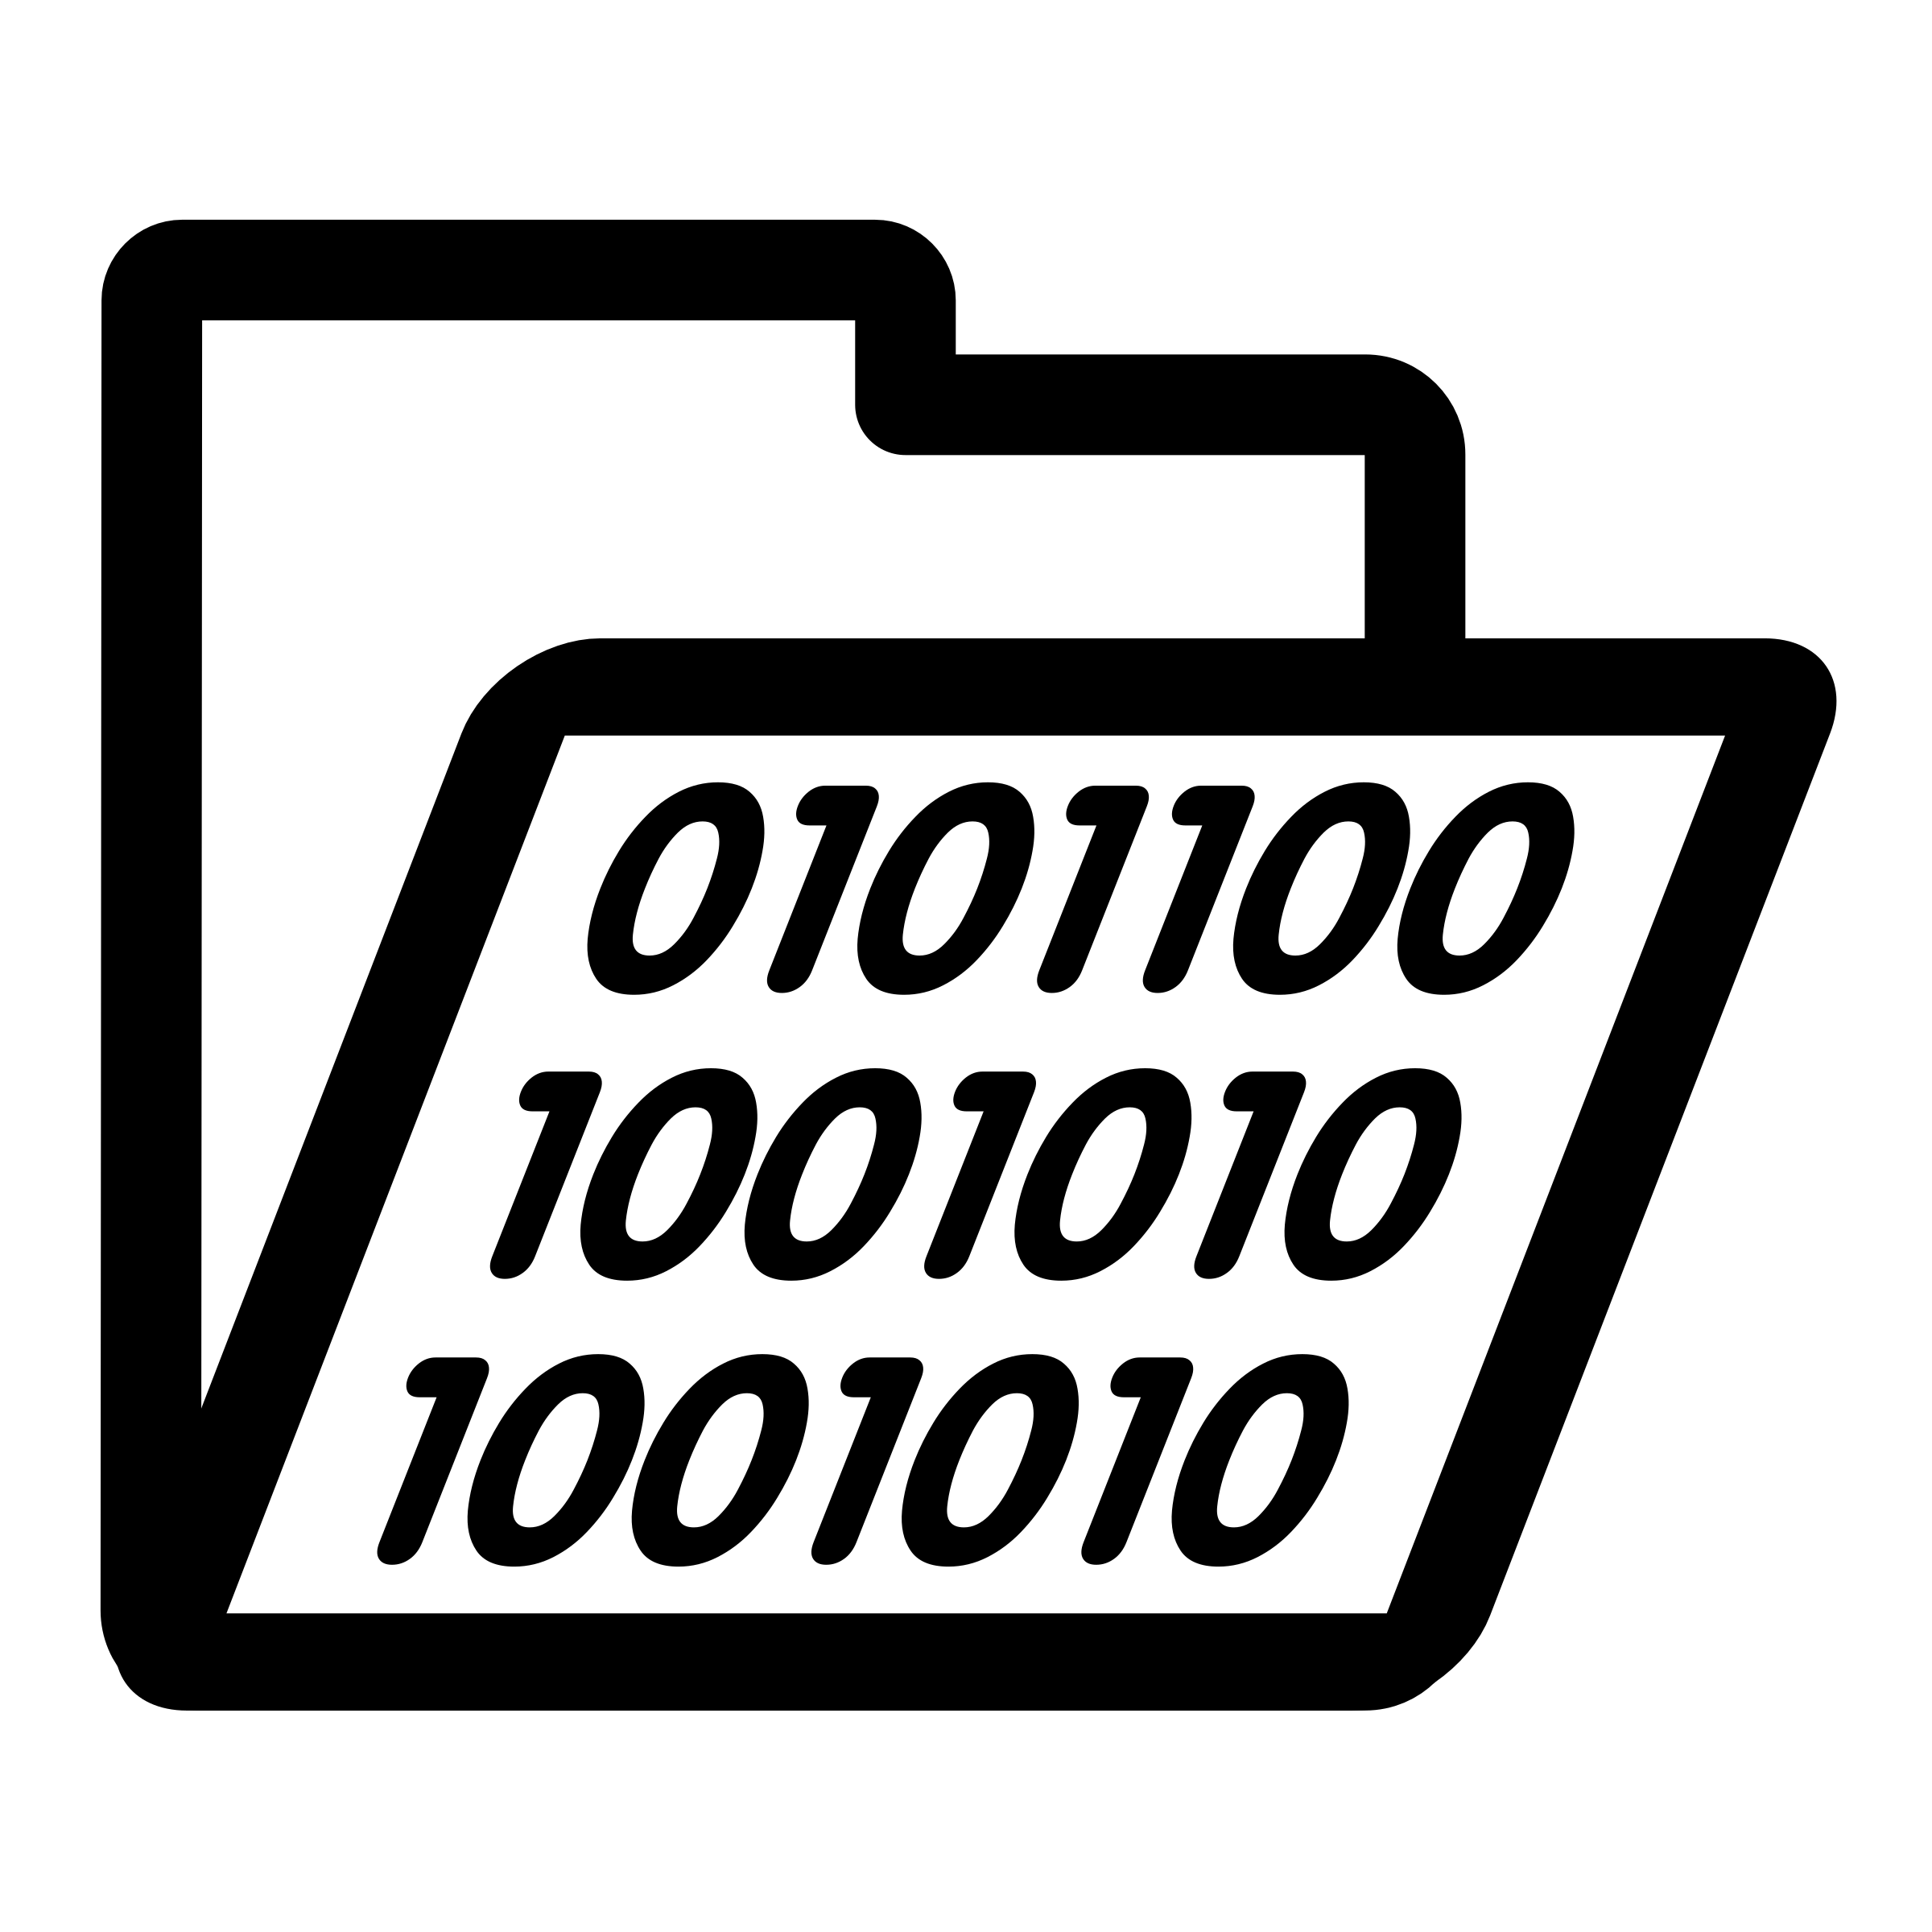 Binary clipart #8, Download drawings